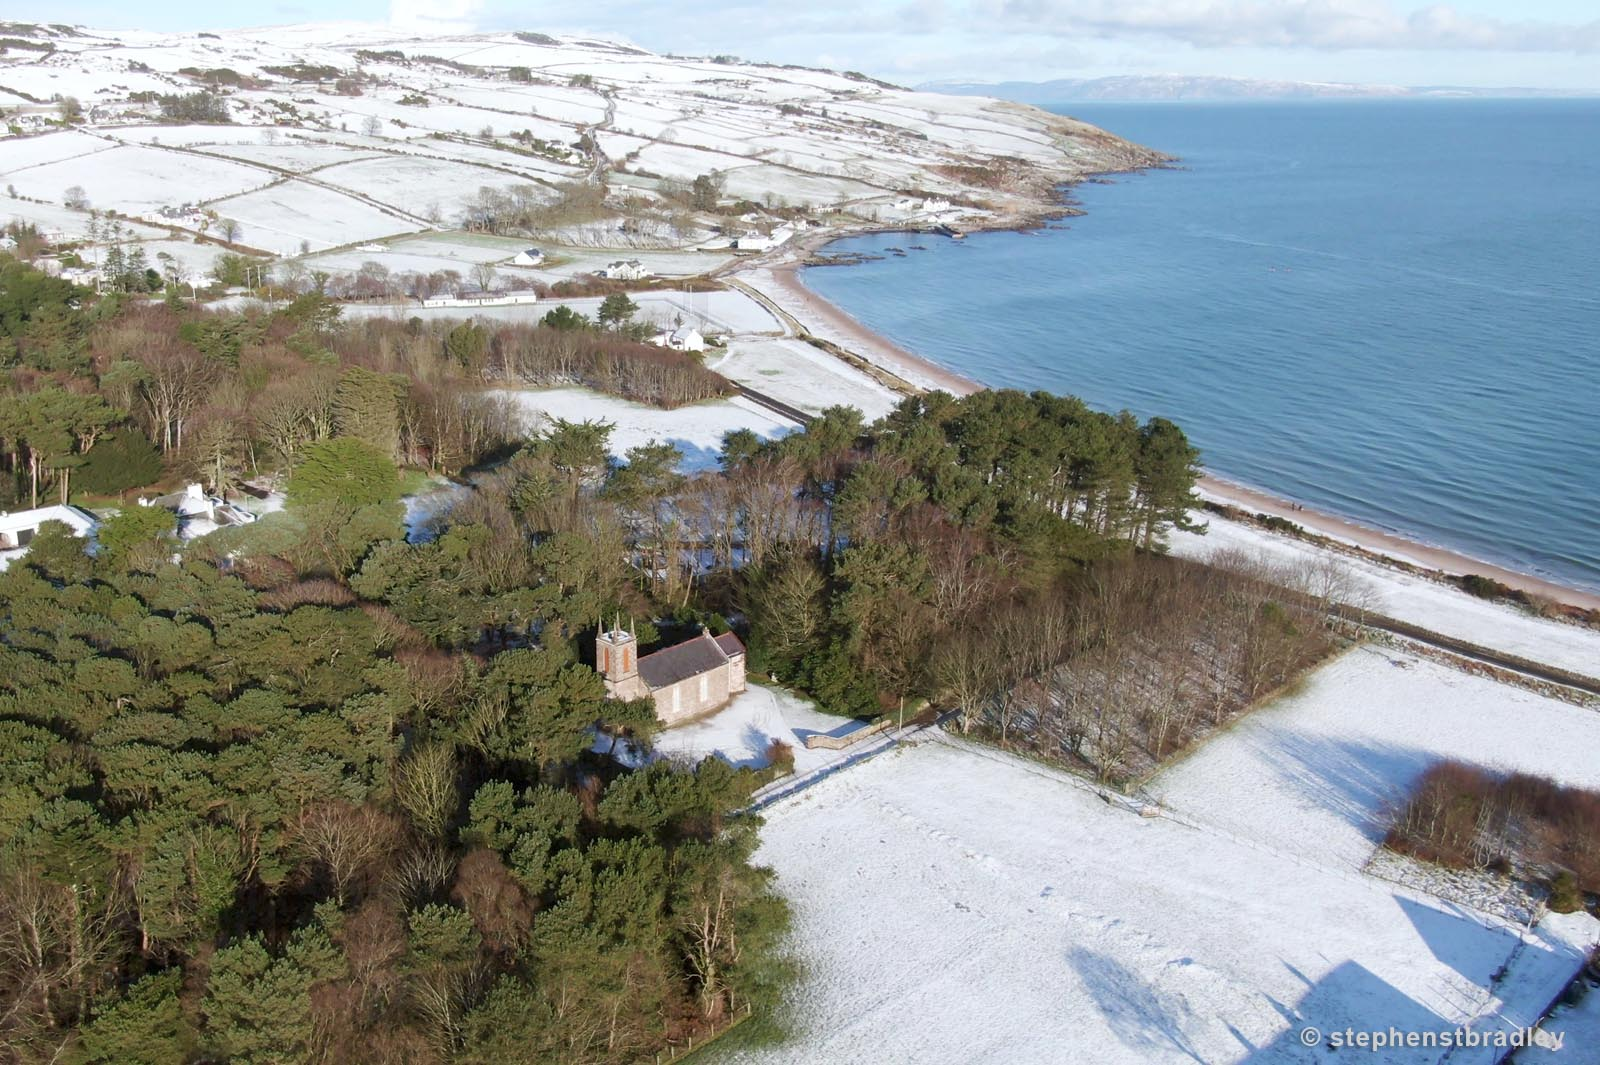 Aerial drone photography and video production services Dublin and Ireland portfolio - Cushendun village under snow in winter, video screenshot 2